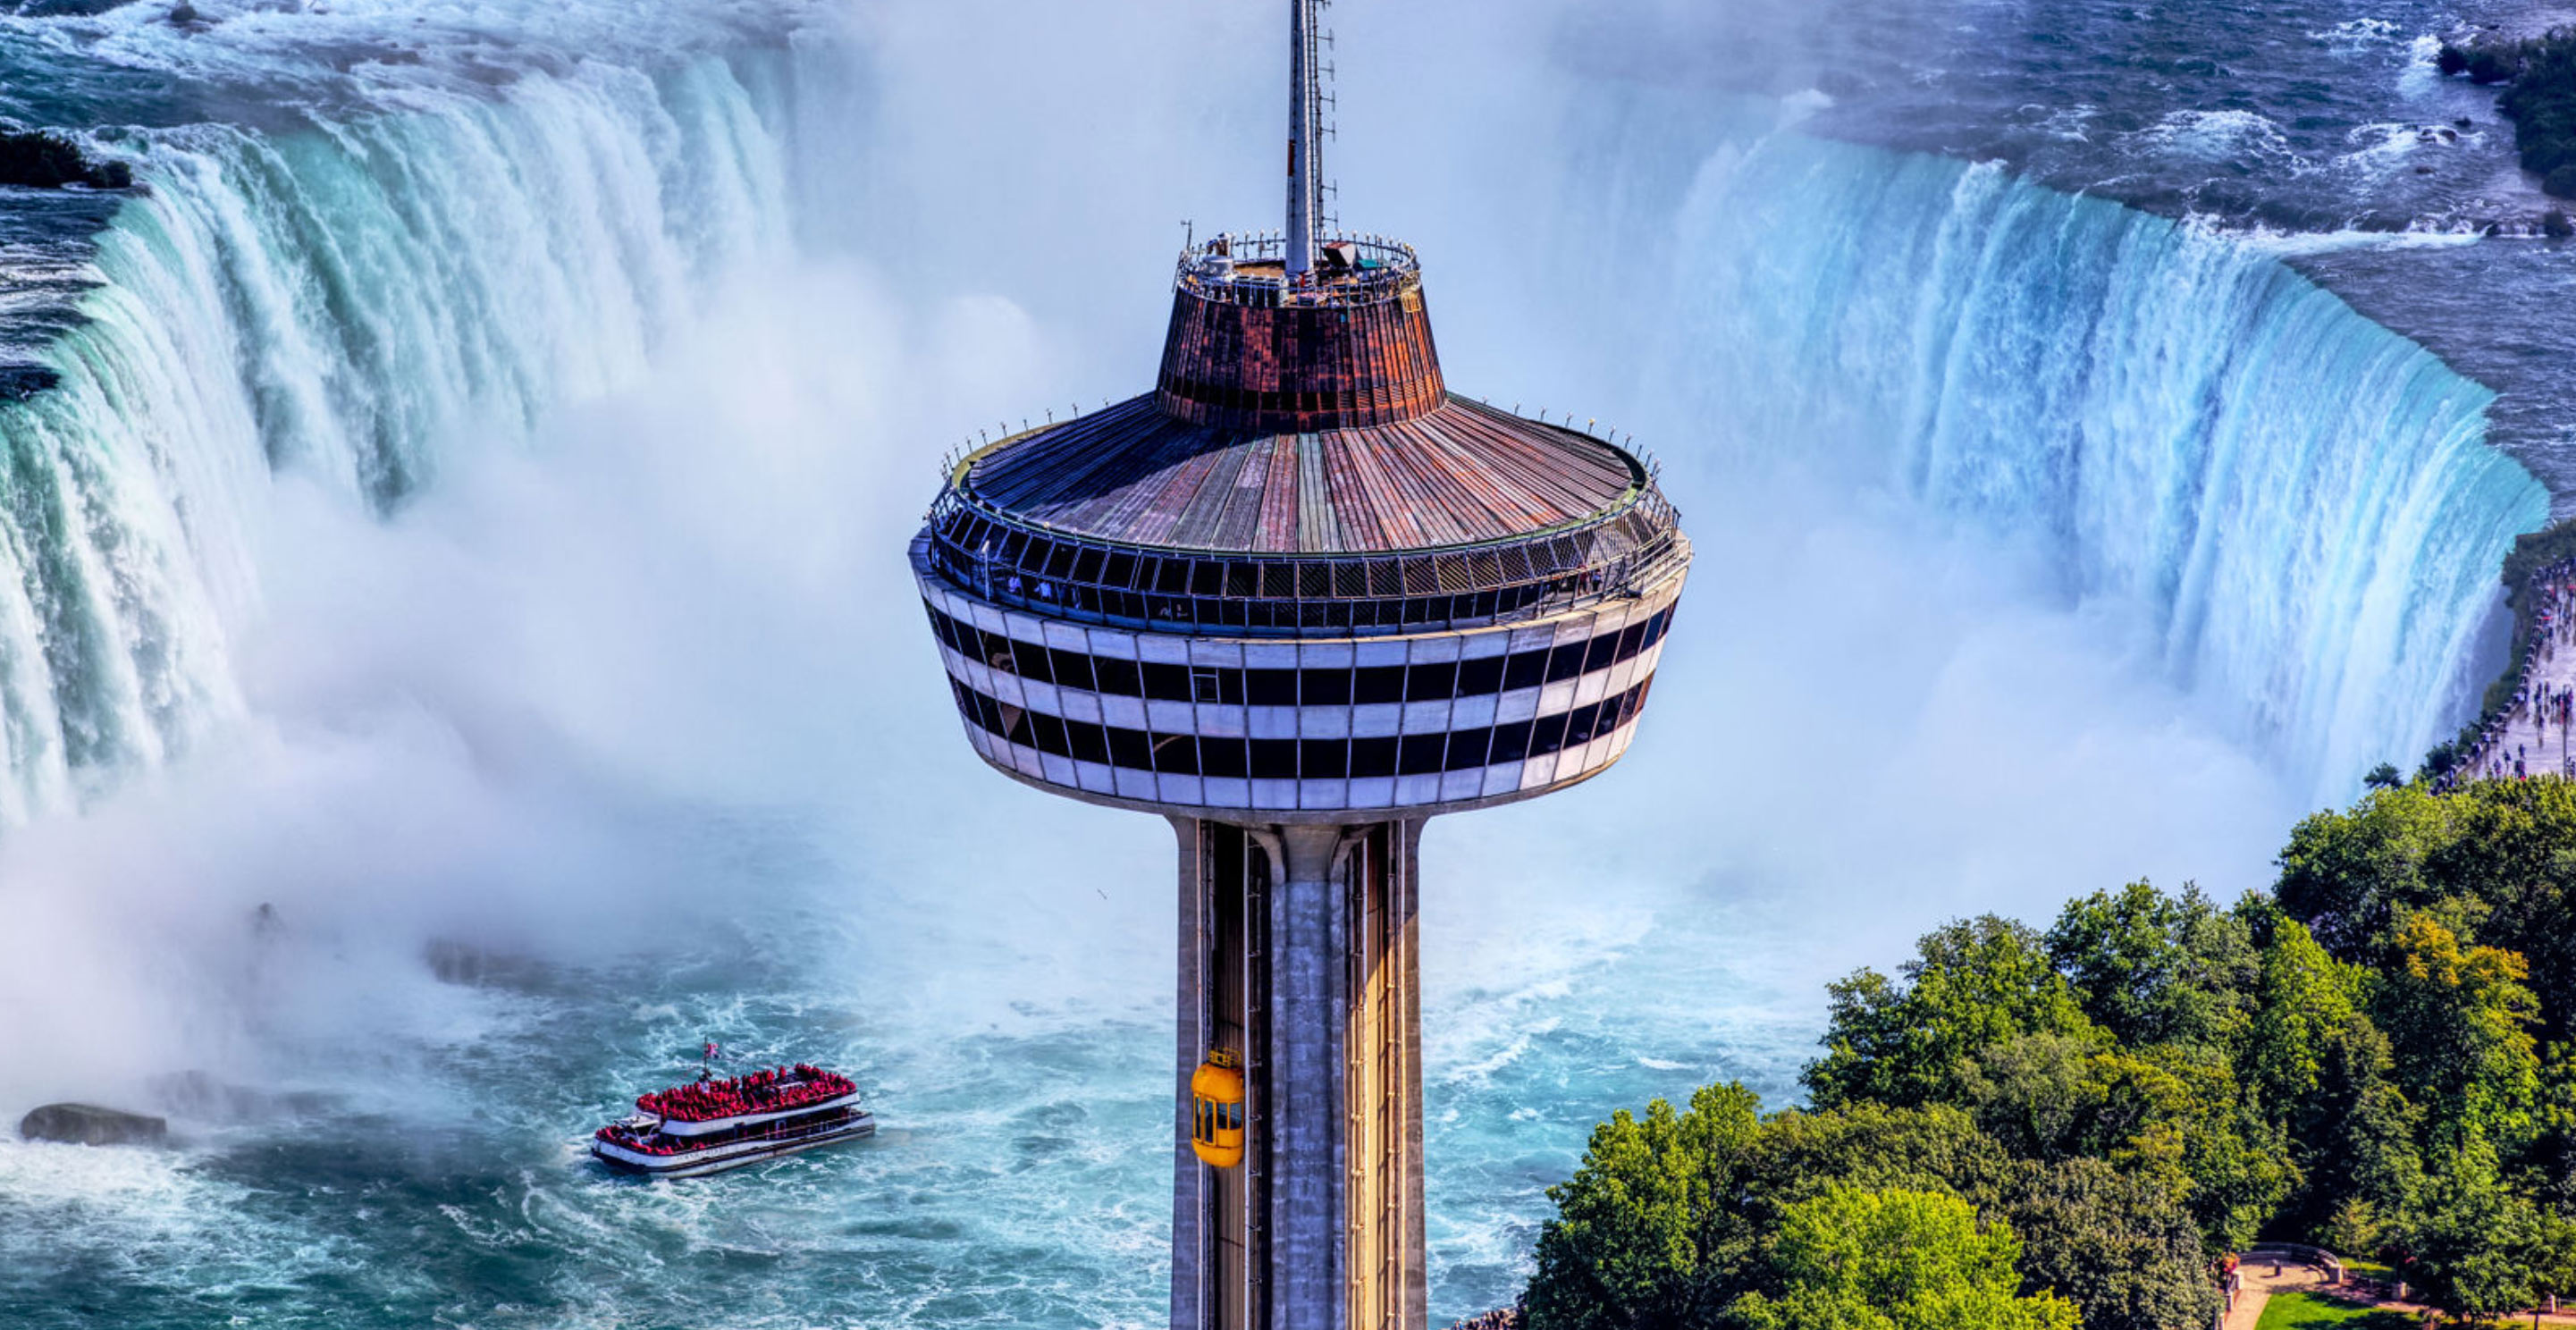 aerial view of the Skylon Tower